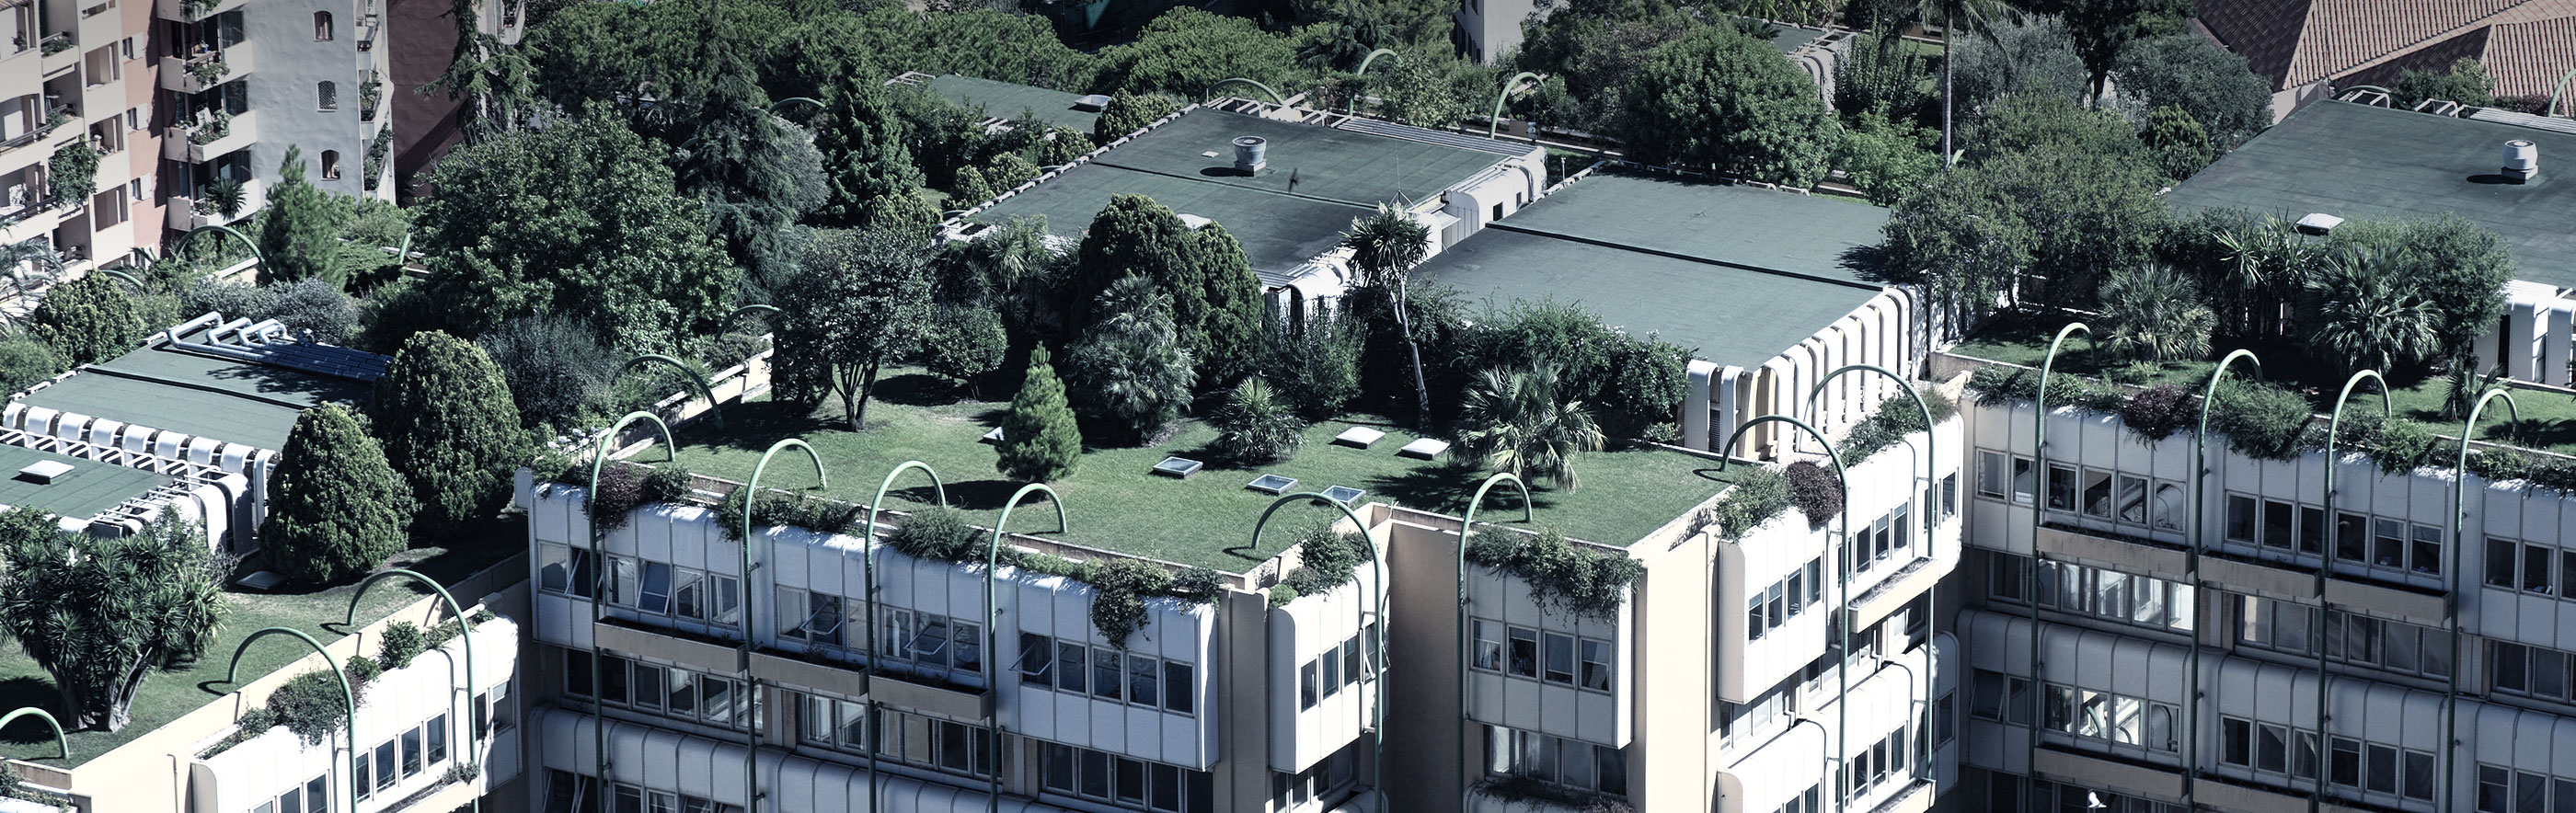 Environmentally friendly commercial roofing